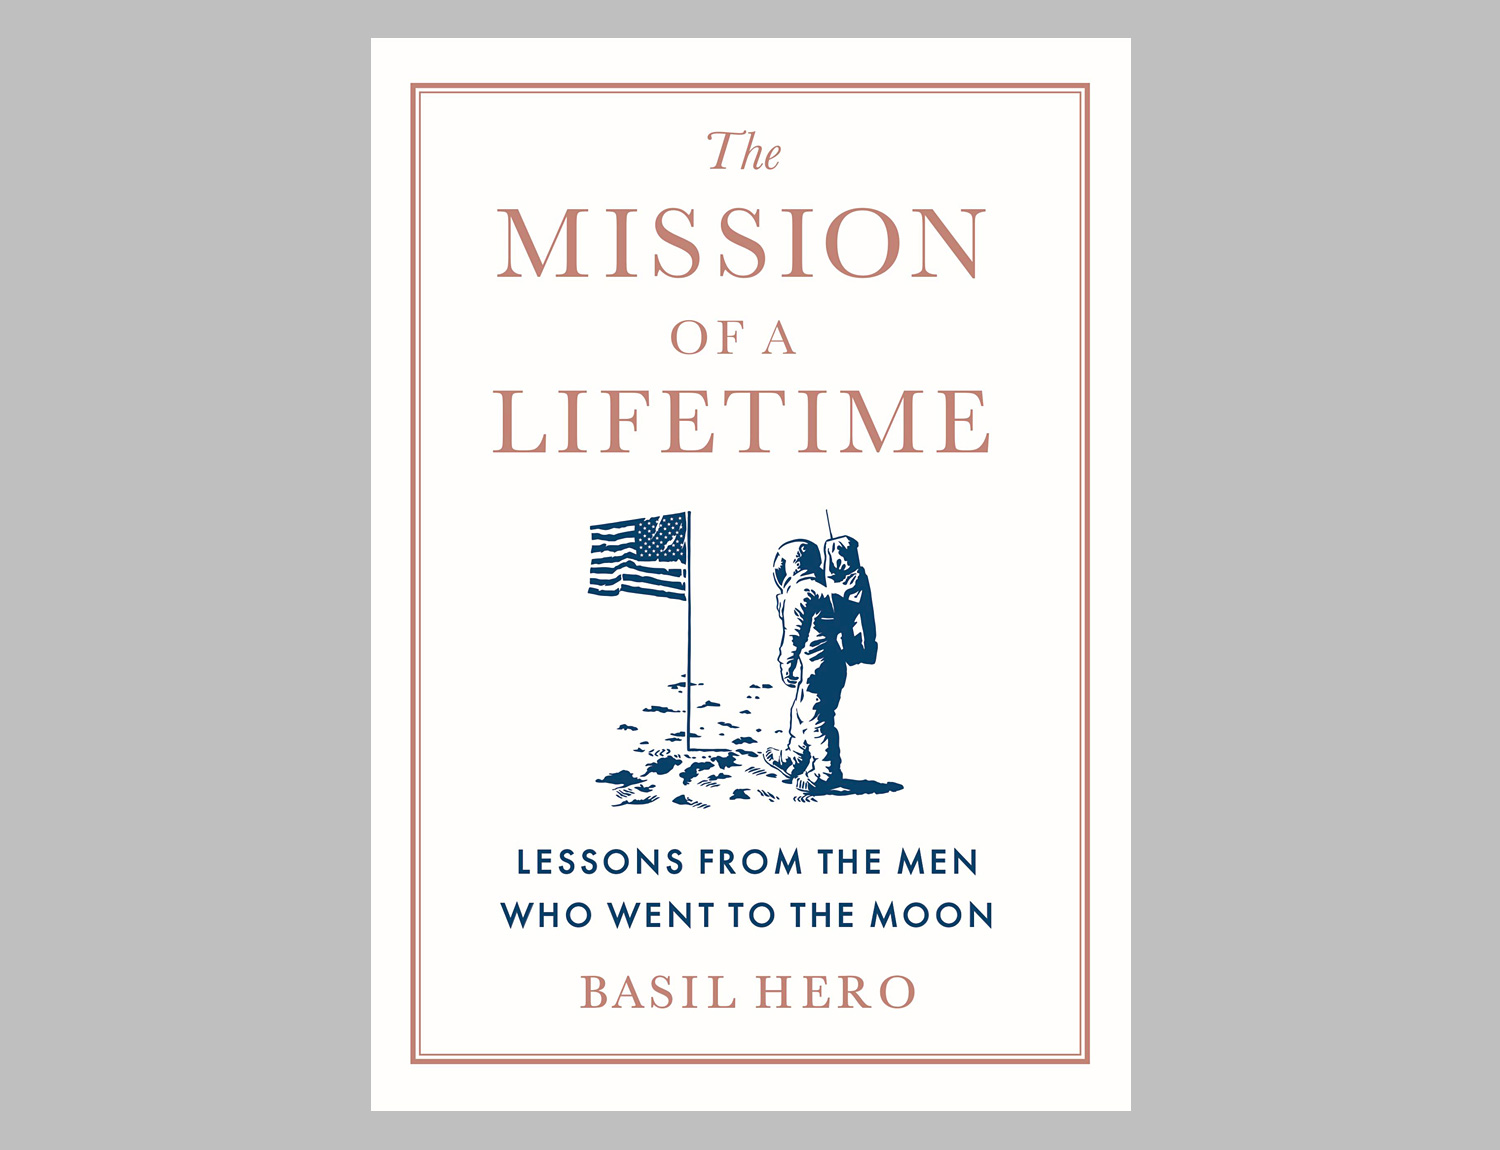 The Mission of a Lifetime: Lessons from the Men Who Went to the Moon at werd.com